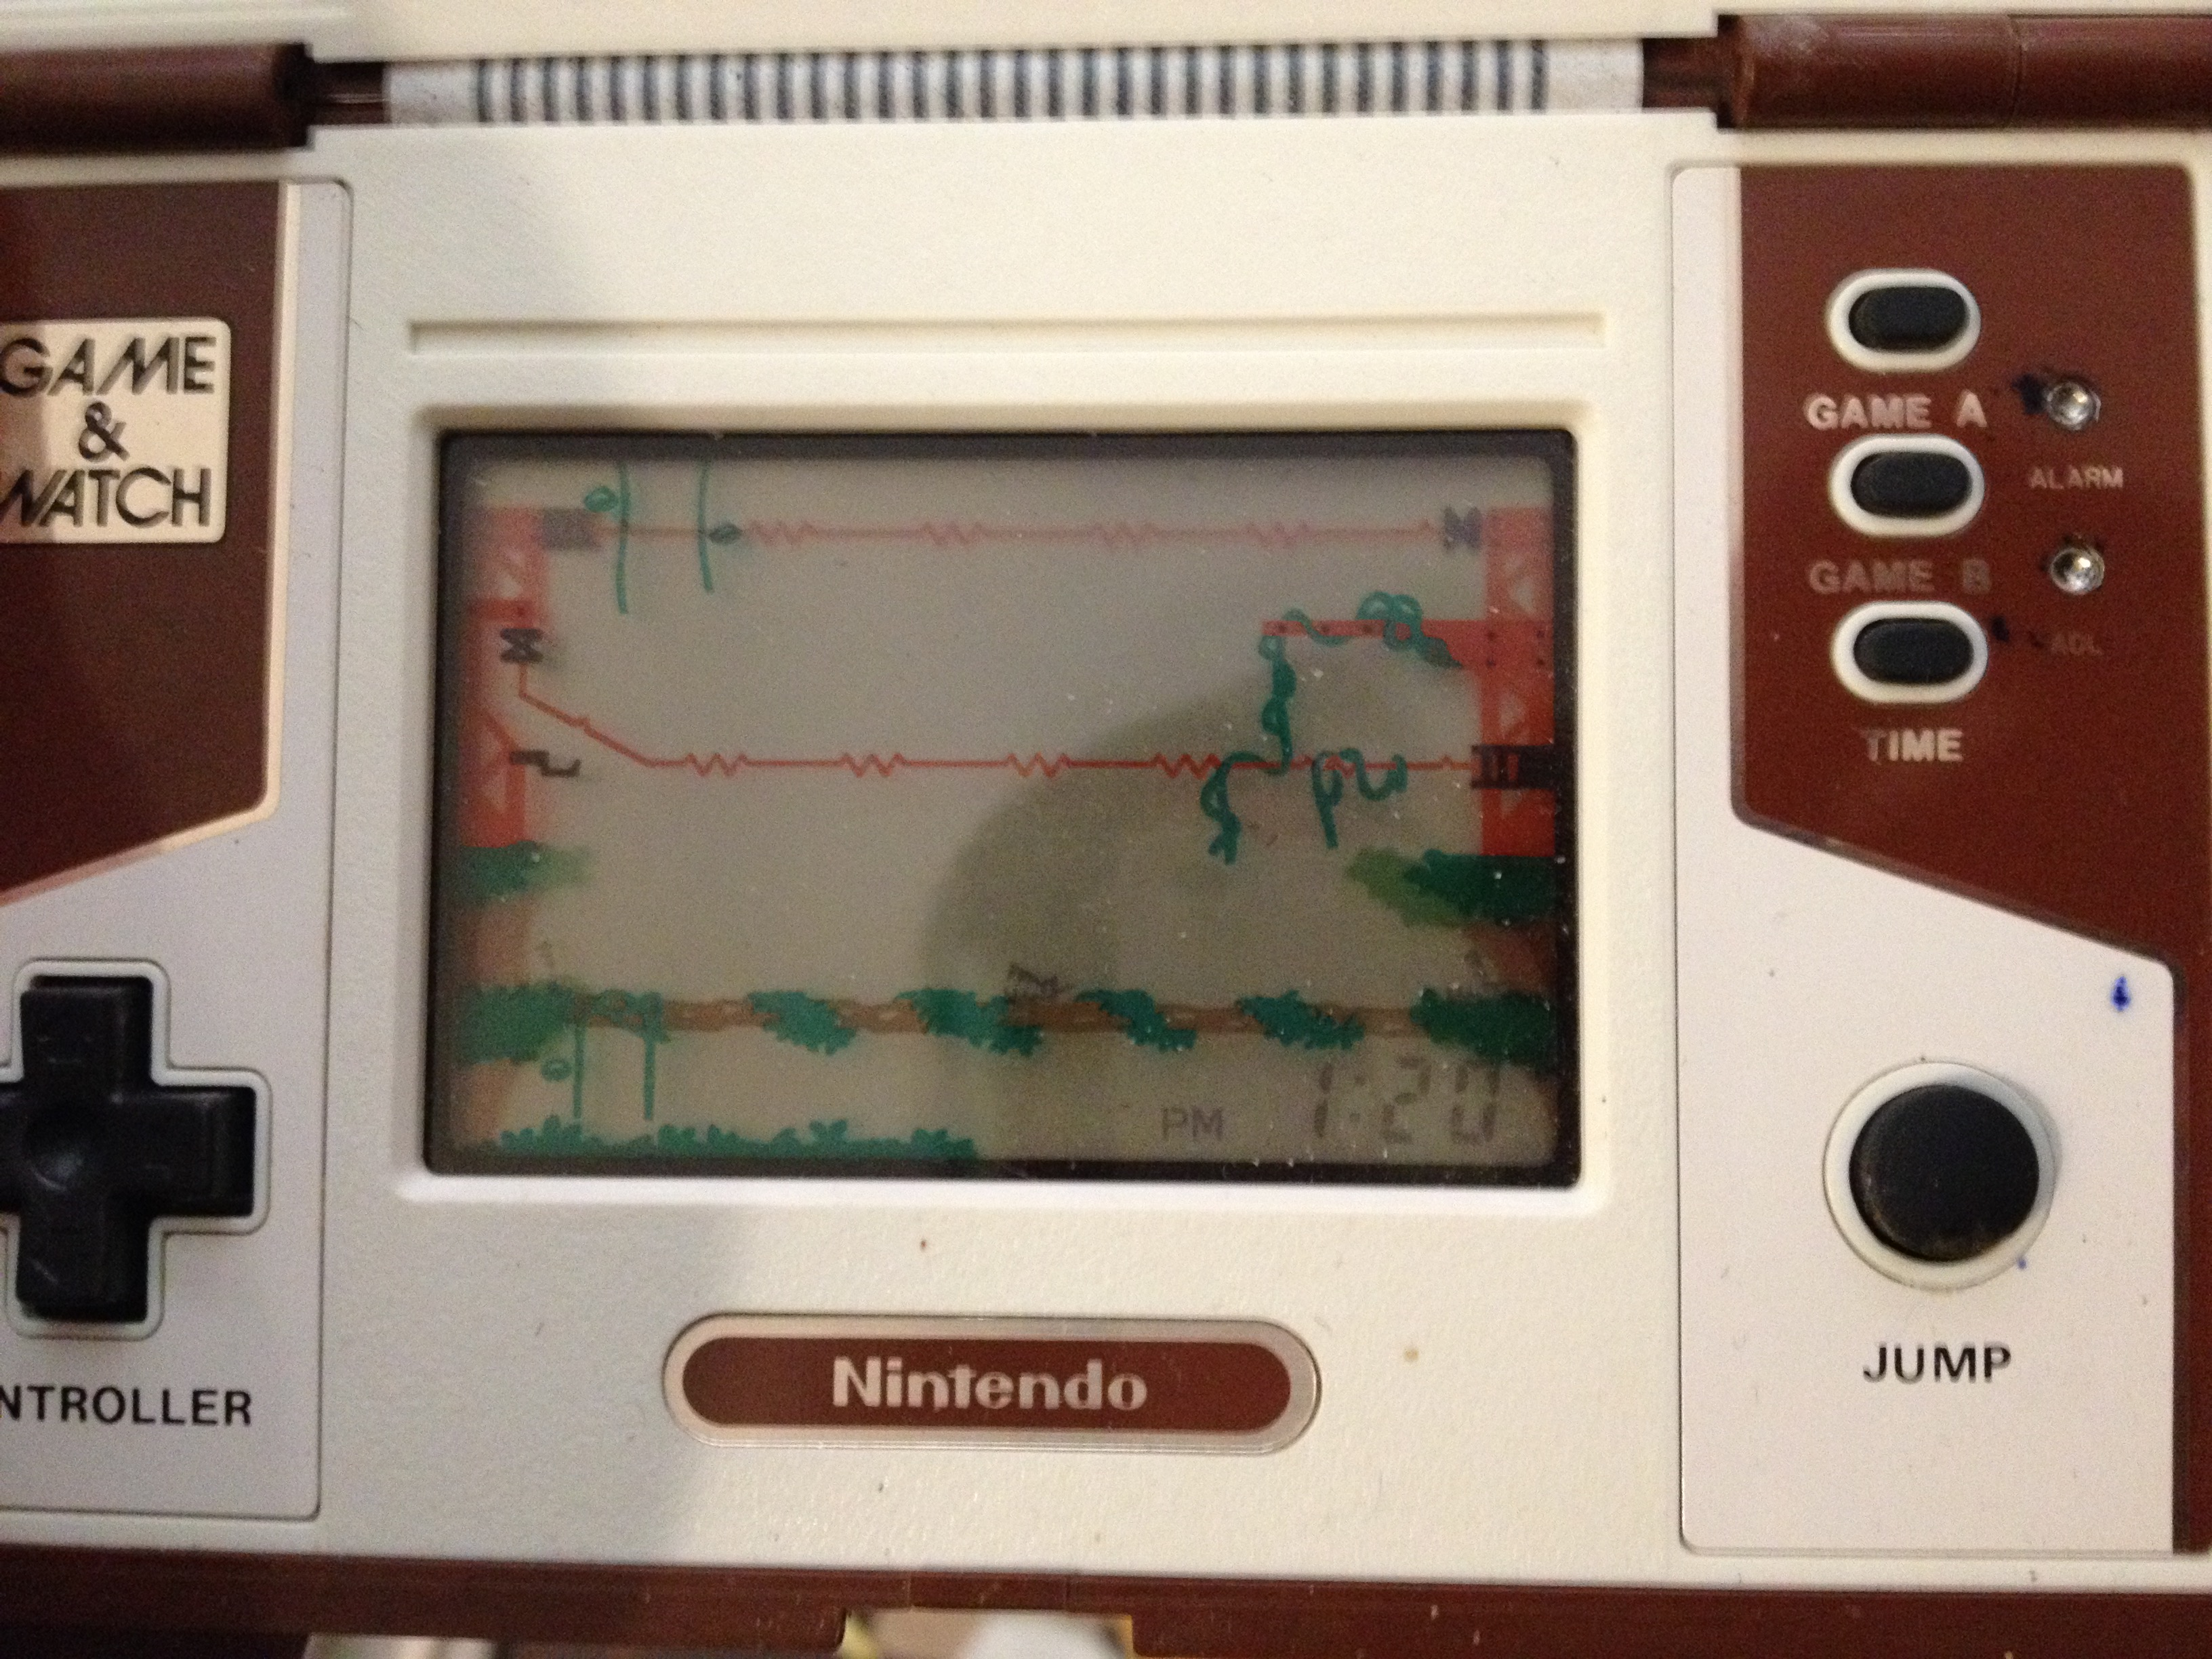 zerooskul: Game and Watch: Donkey Kong II (Dedicated Handheld) 999 points on 2019-04-15 13:24:06